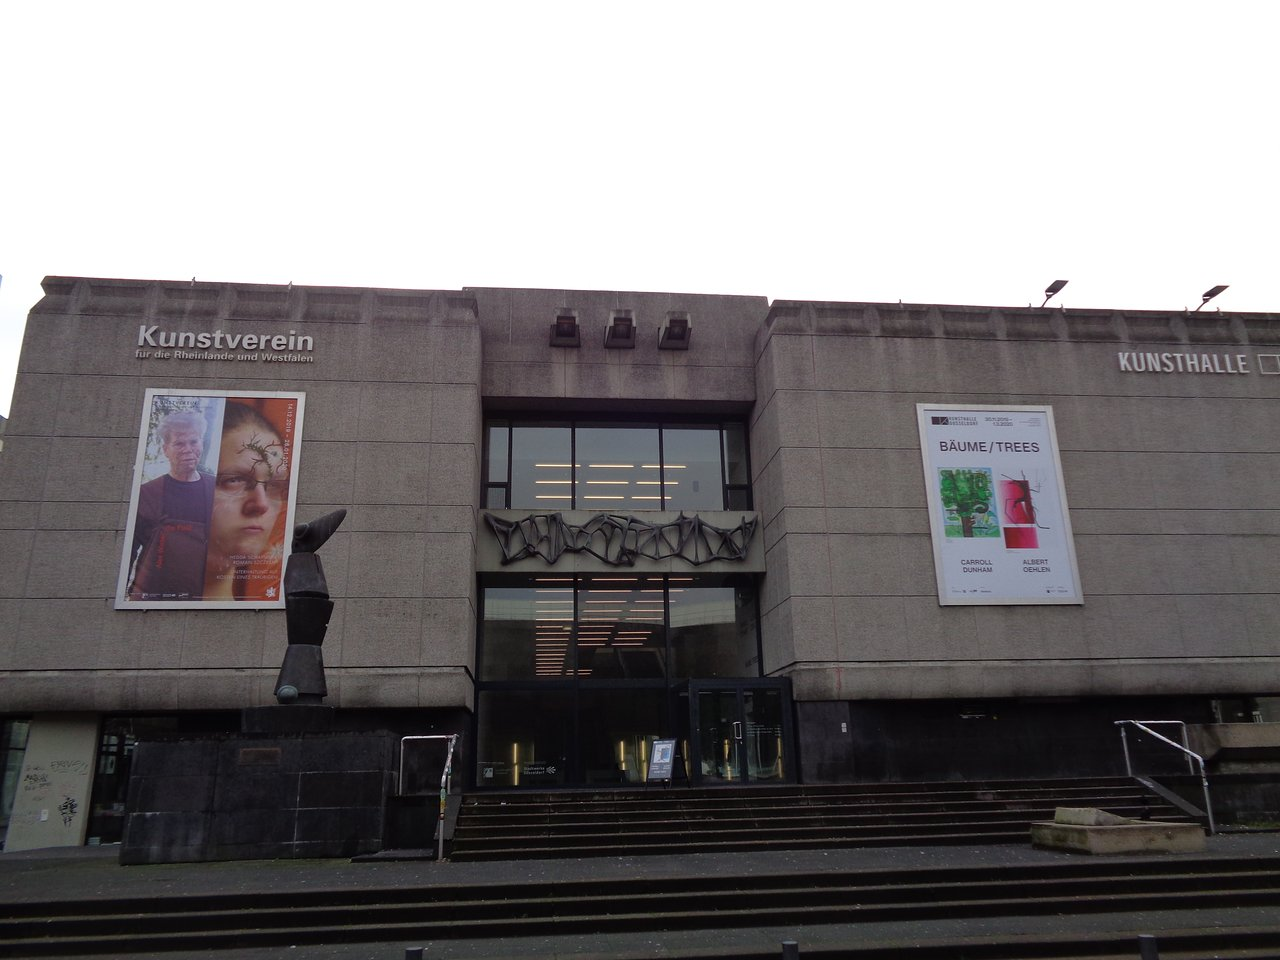 Kunsthalle Dusseldorf 2020 All You Need To Know Before You Go